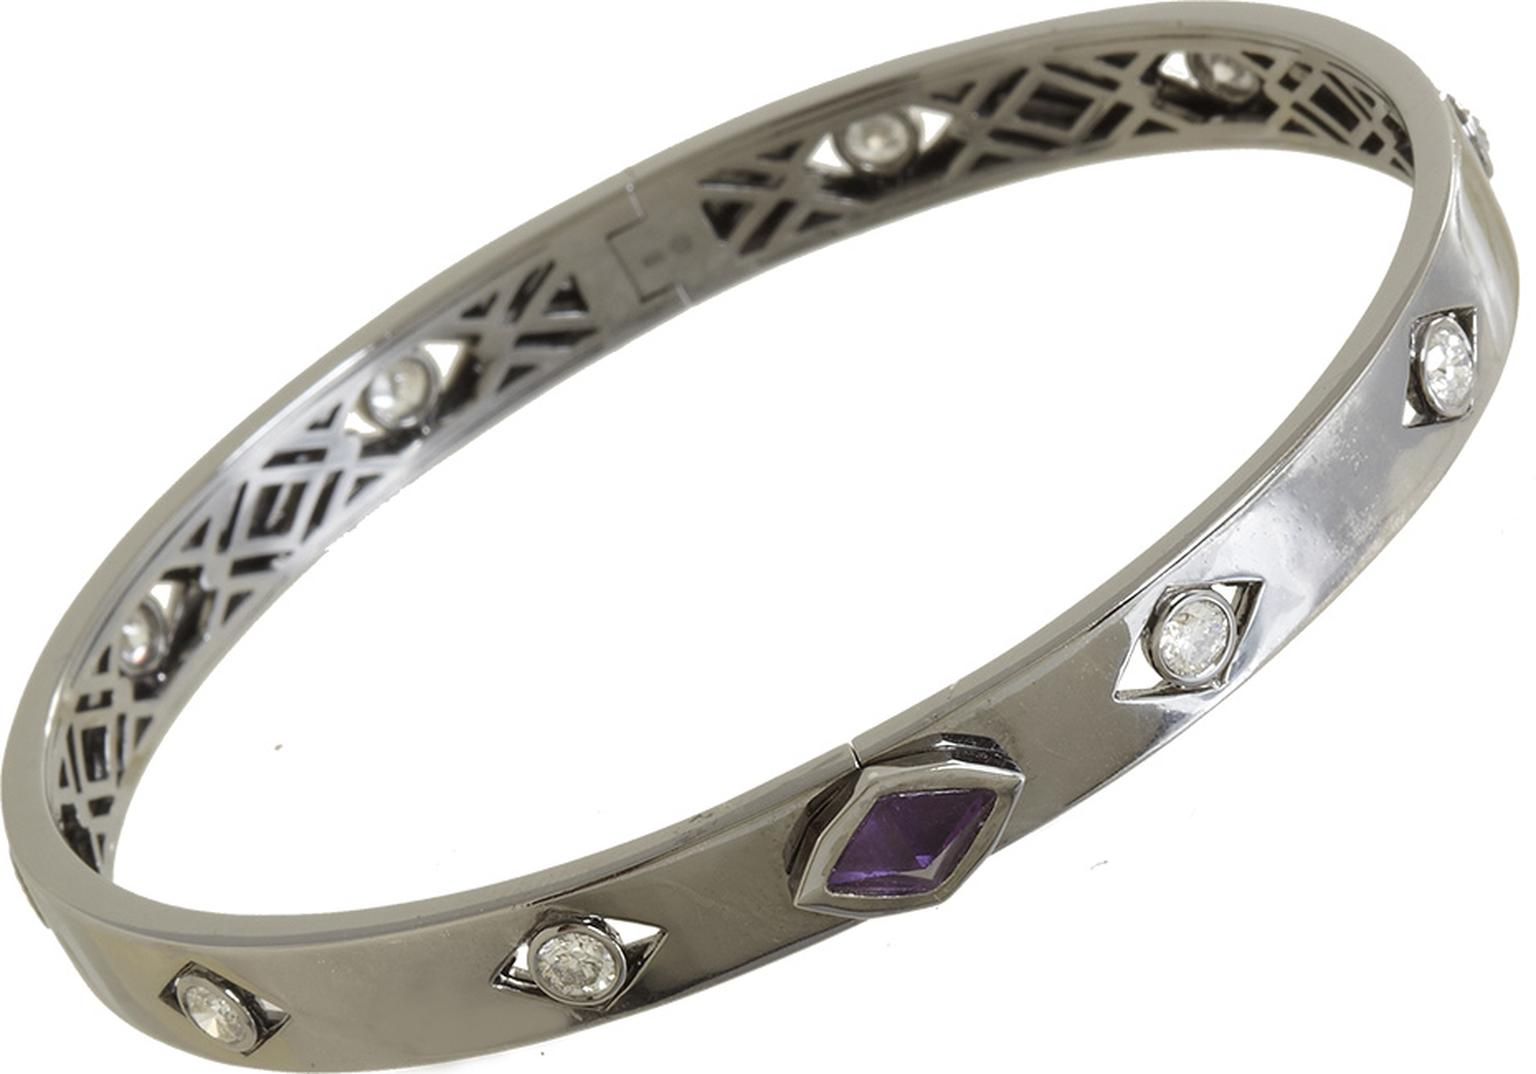 Unisex Deborah Pagani S&M bracelet in 18k white gold with an amethyst pyramid and diamonds, from the Family Jewels collection